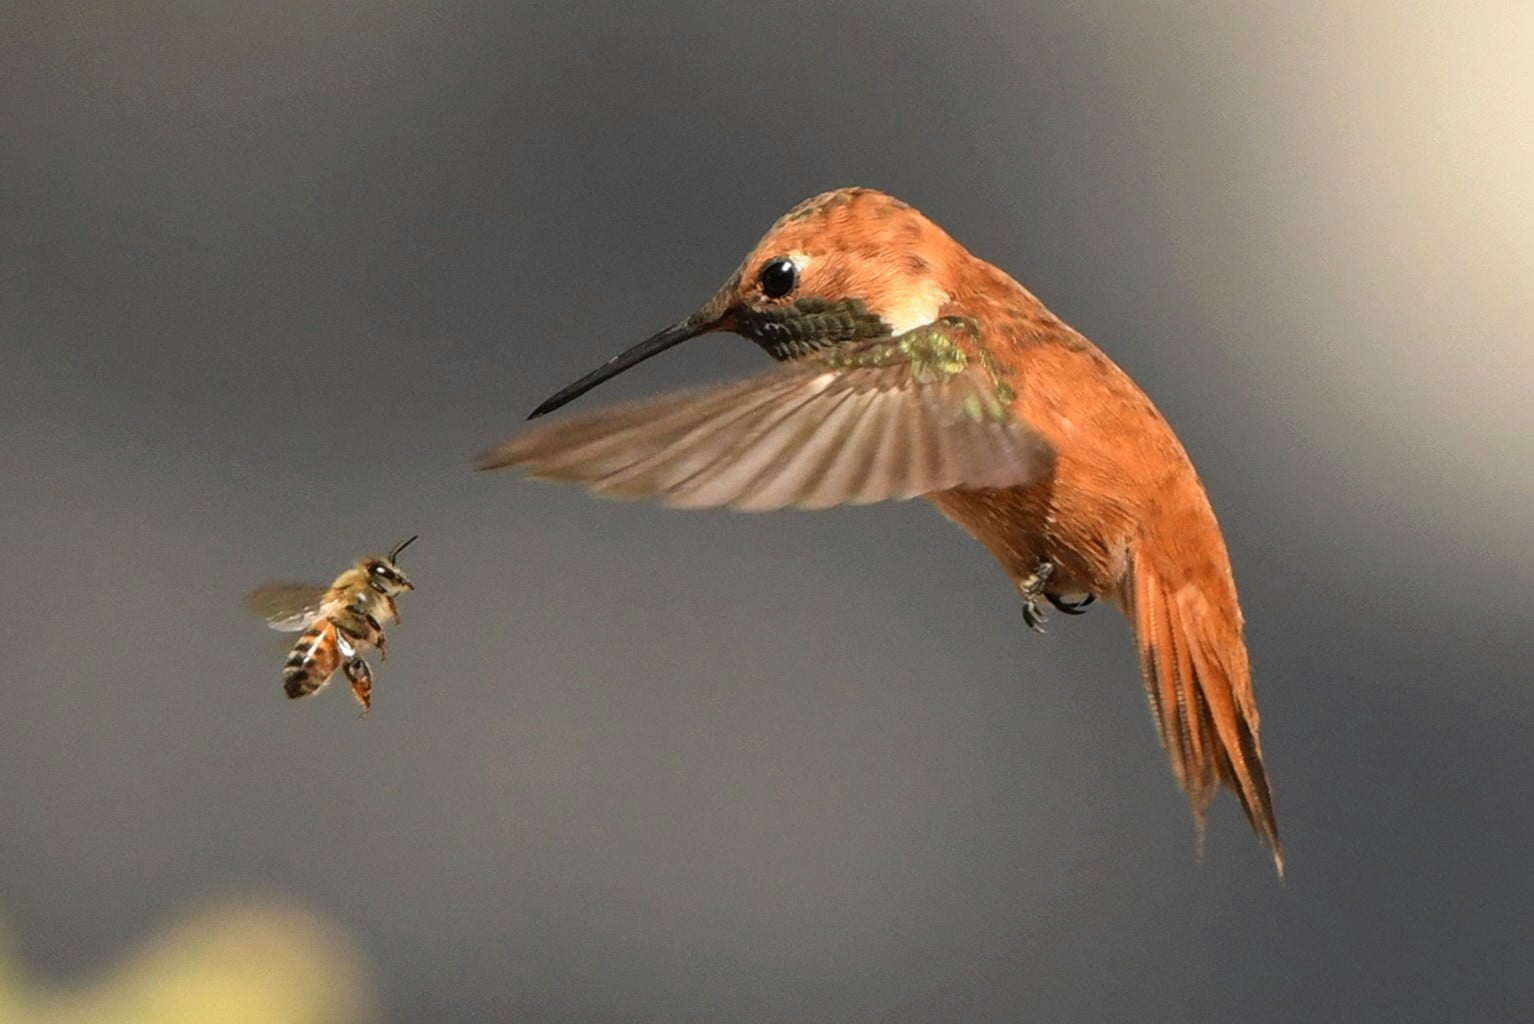 Bee and Hummingbird Face each other mid-flightg